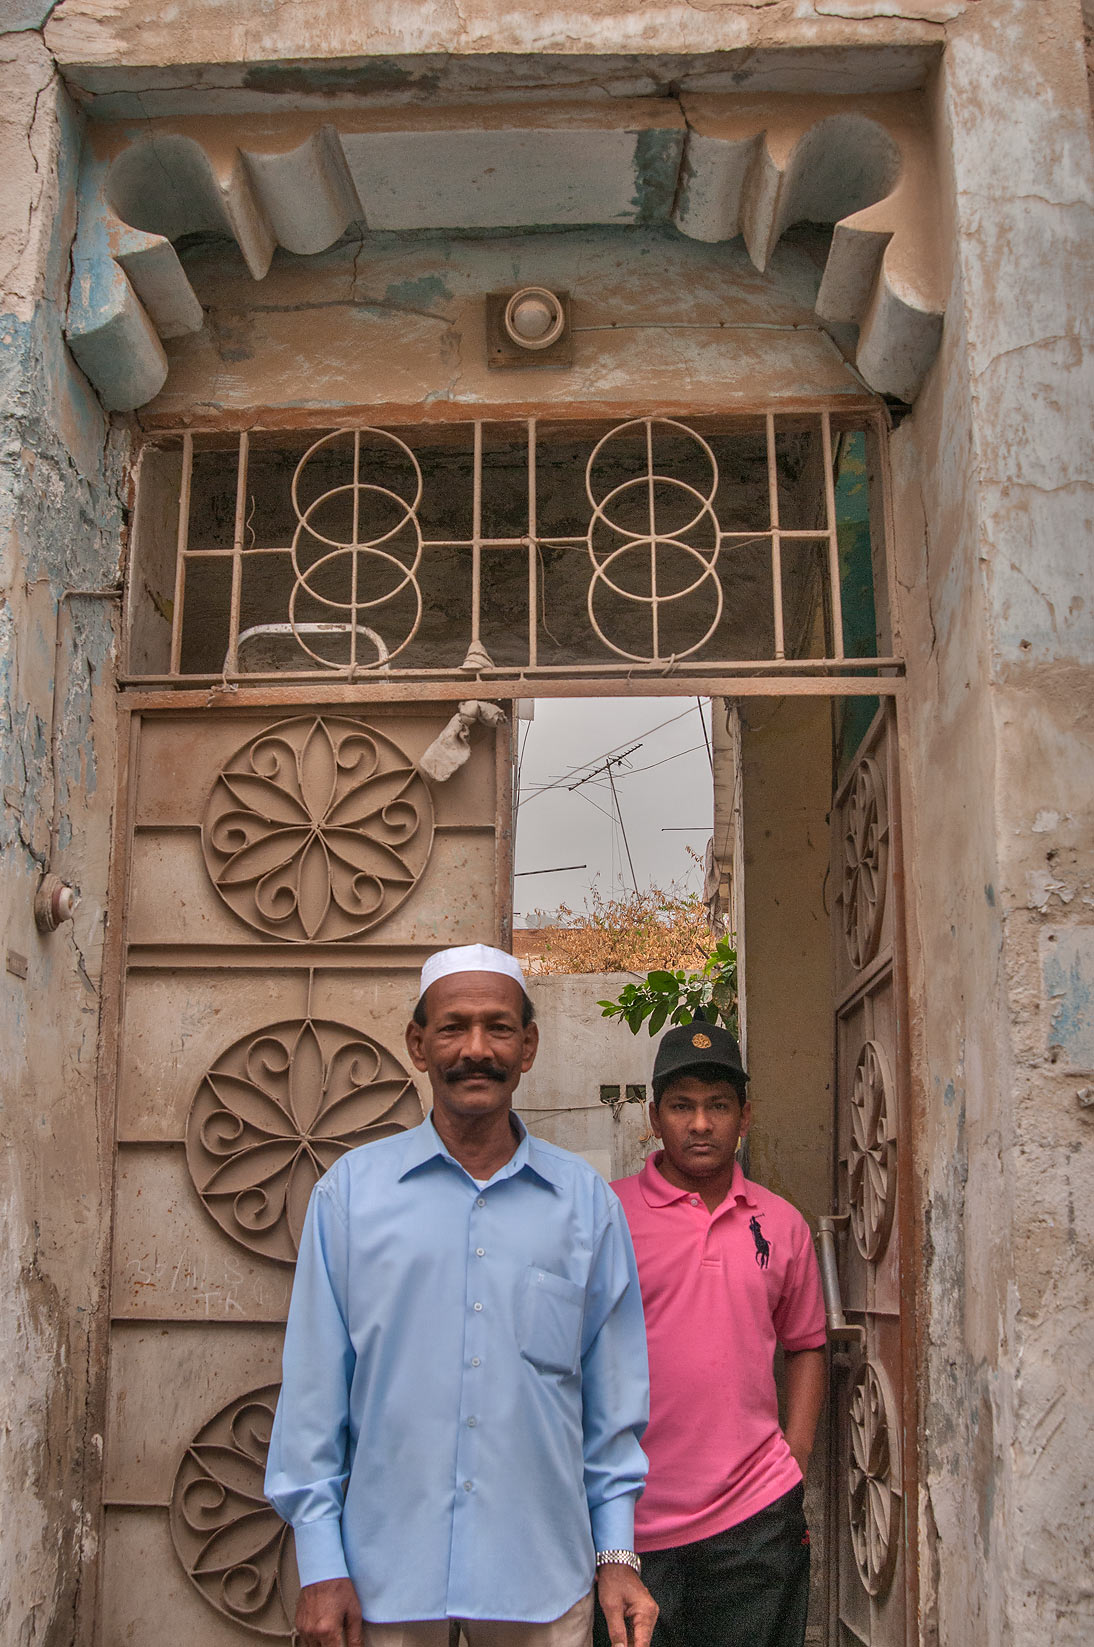 Traditional doorway at Al Jassasiya St., Musheirib area. Doha, Qatar